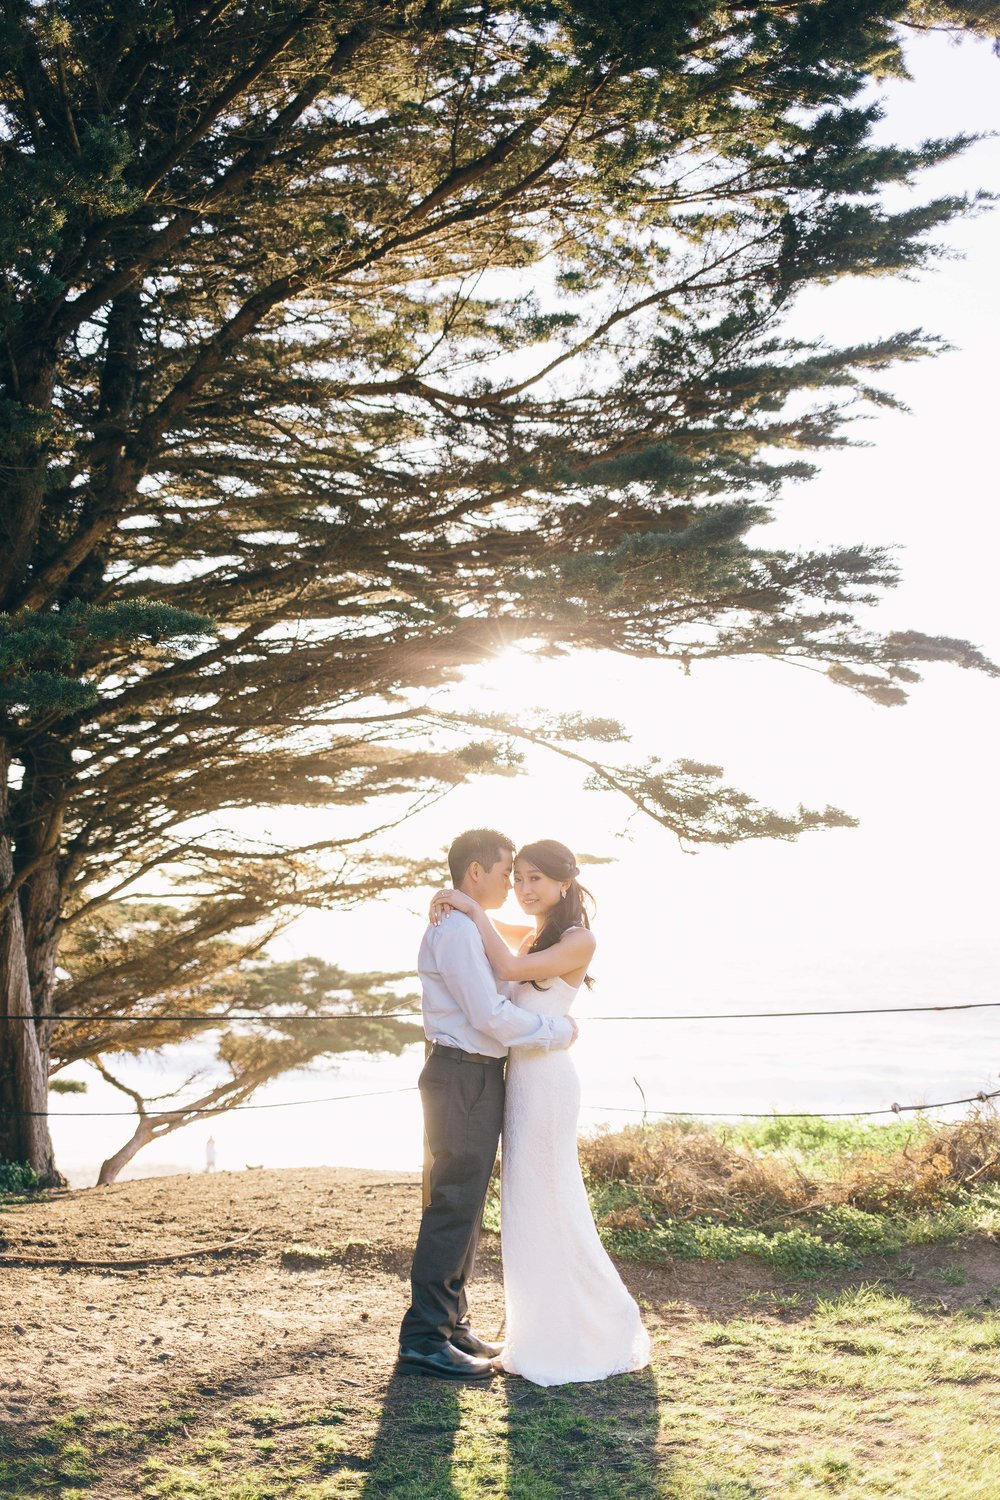 Best Engagement Photo Locations in San Francisco - Baker Beach Engagement Photos by JBJ Pictures (12).jpg